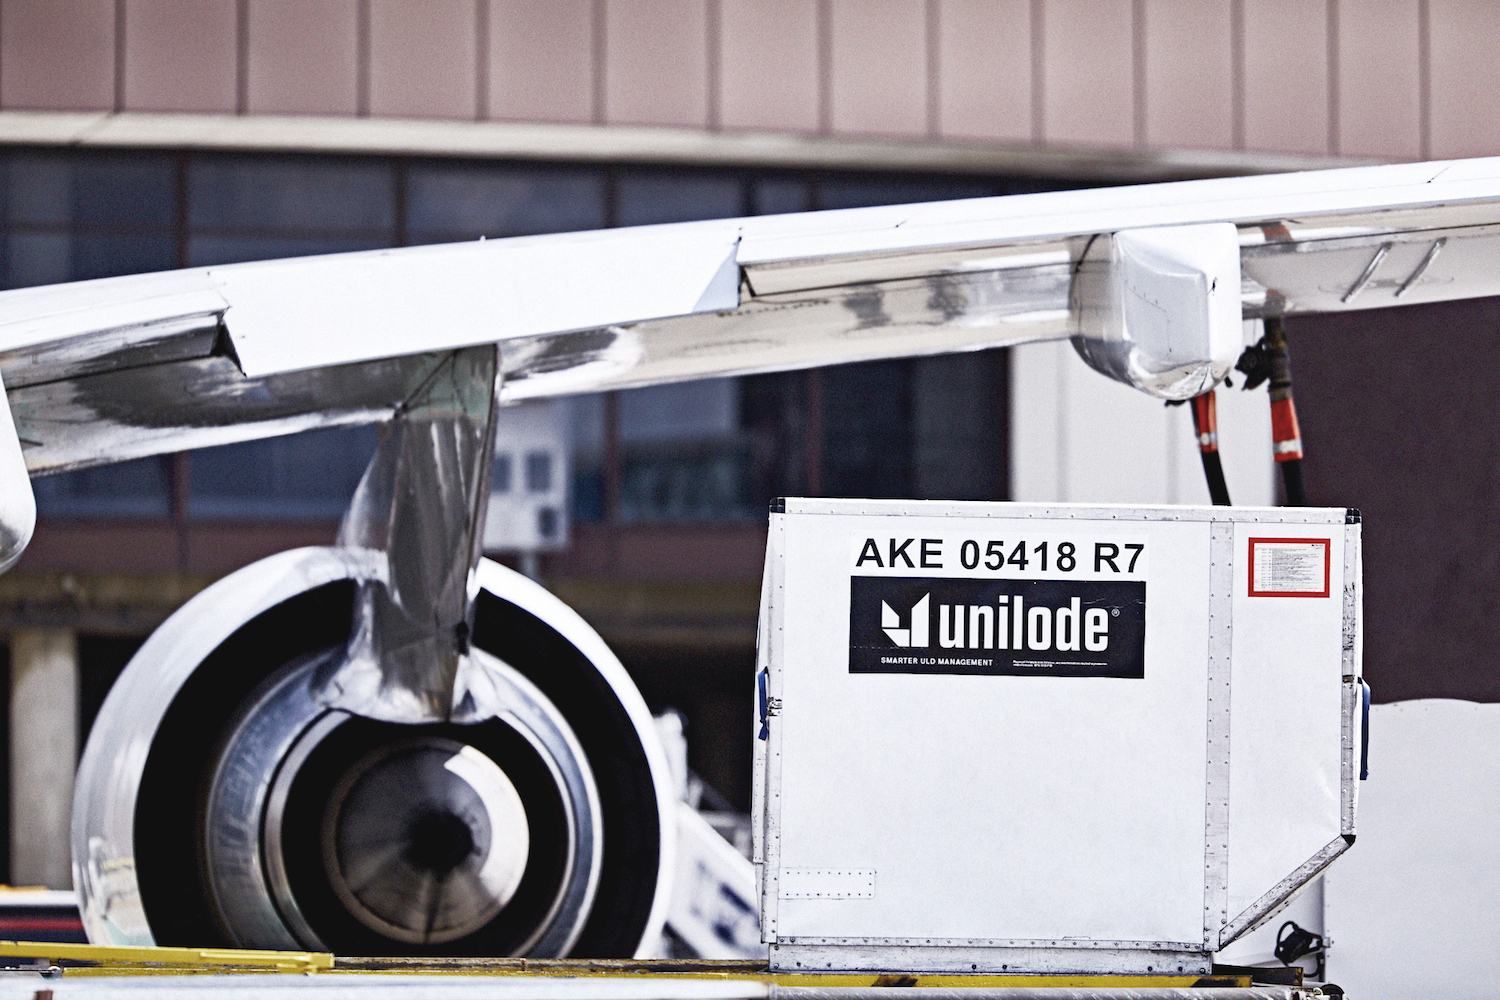 Unilode Aviation Solutions Unilode Uld Management Uld